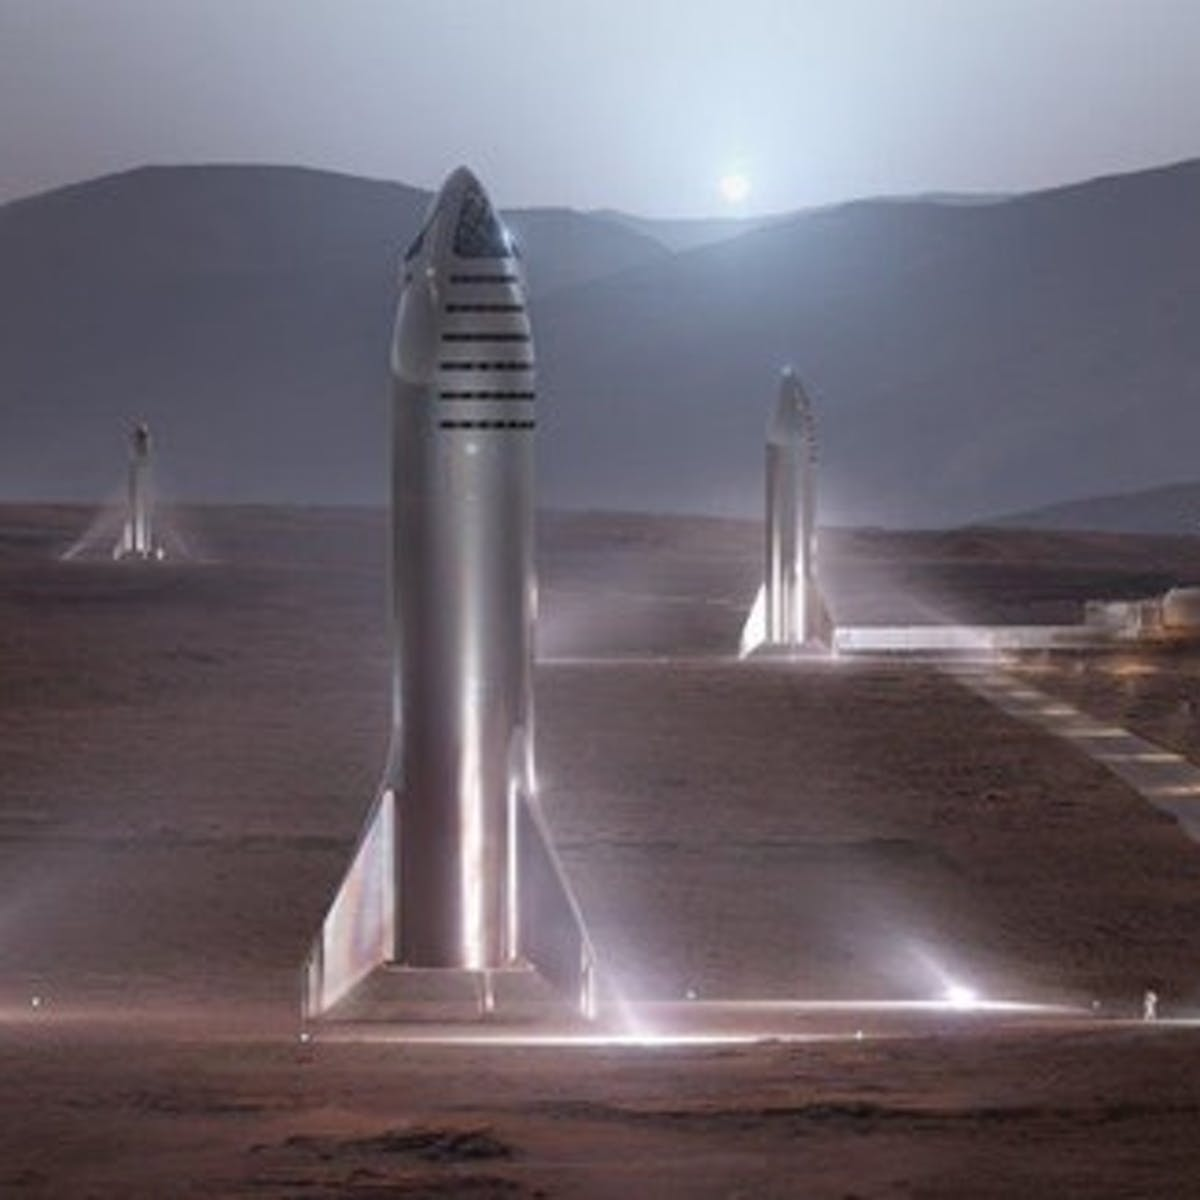 Musk Reads: Elon Musk hints at first Starship payload